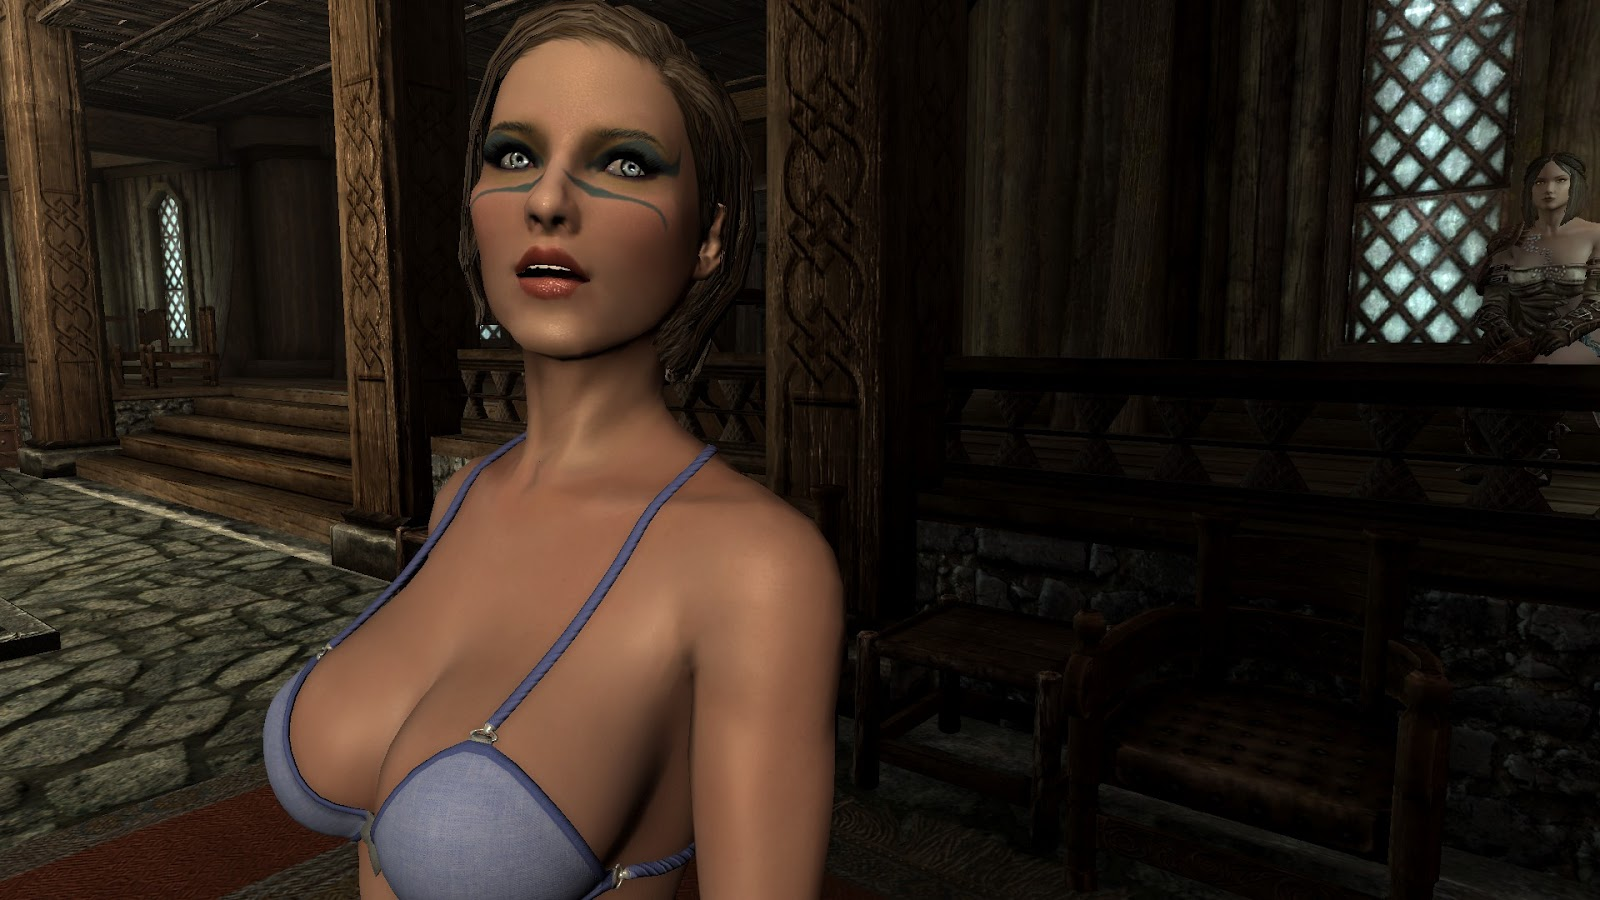 Sexy Hot Pc Games Wallpaper - Skyrim Sexy Games-4904